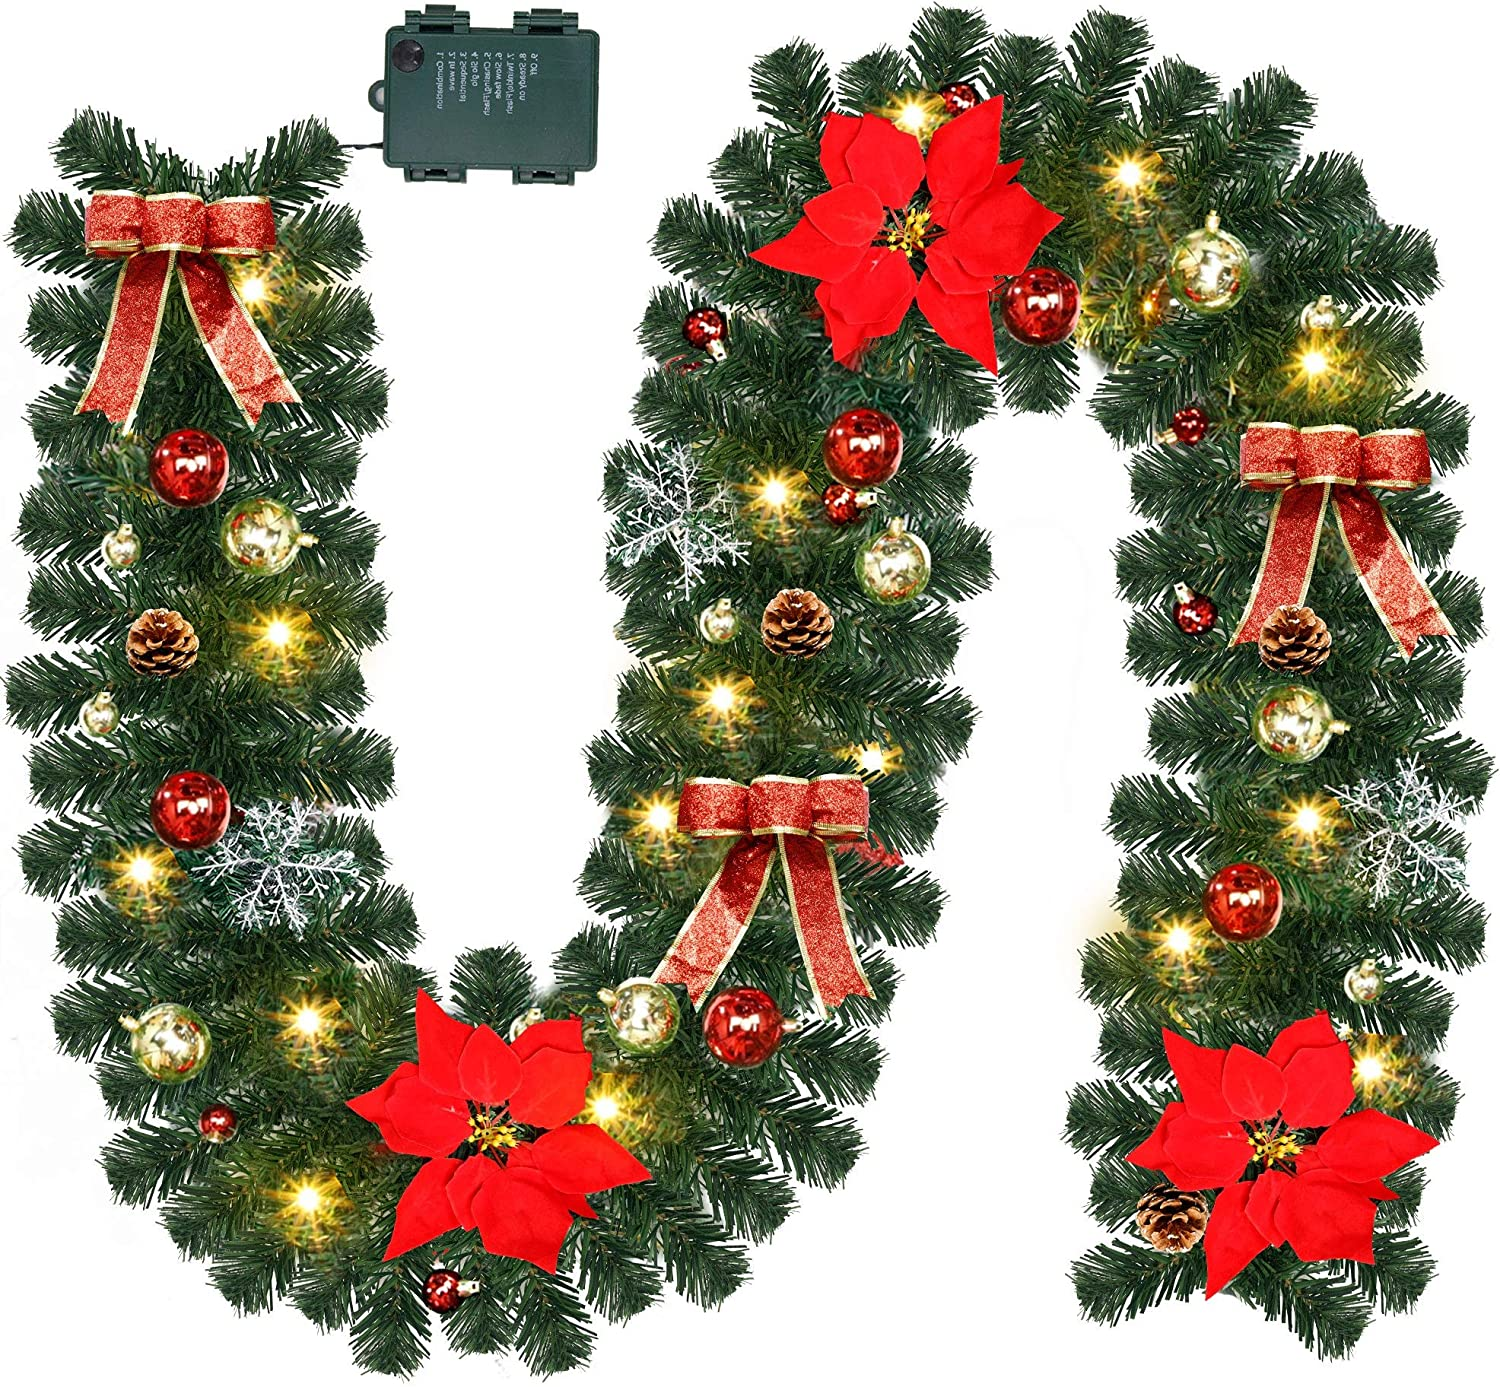 ATDAWN 9 Foot Christmas Lighted Garland, Battery Operated Christmas Garland with Lights, Pre Lit Garland Wreath with Christmas Ball Ornaments for Indoor Home Winter Holiday New Year Xmas Decorations